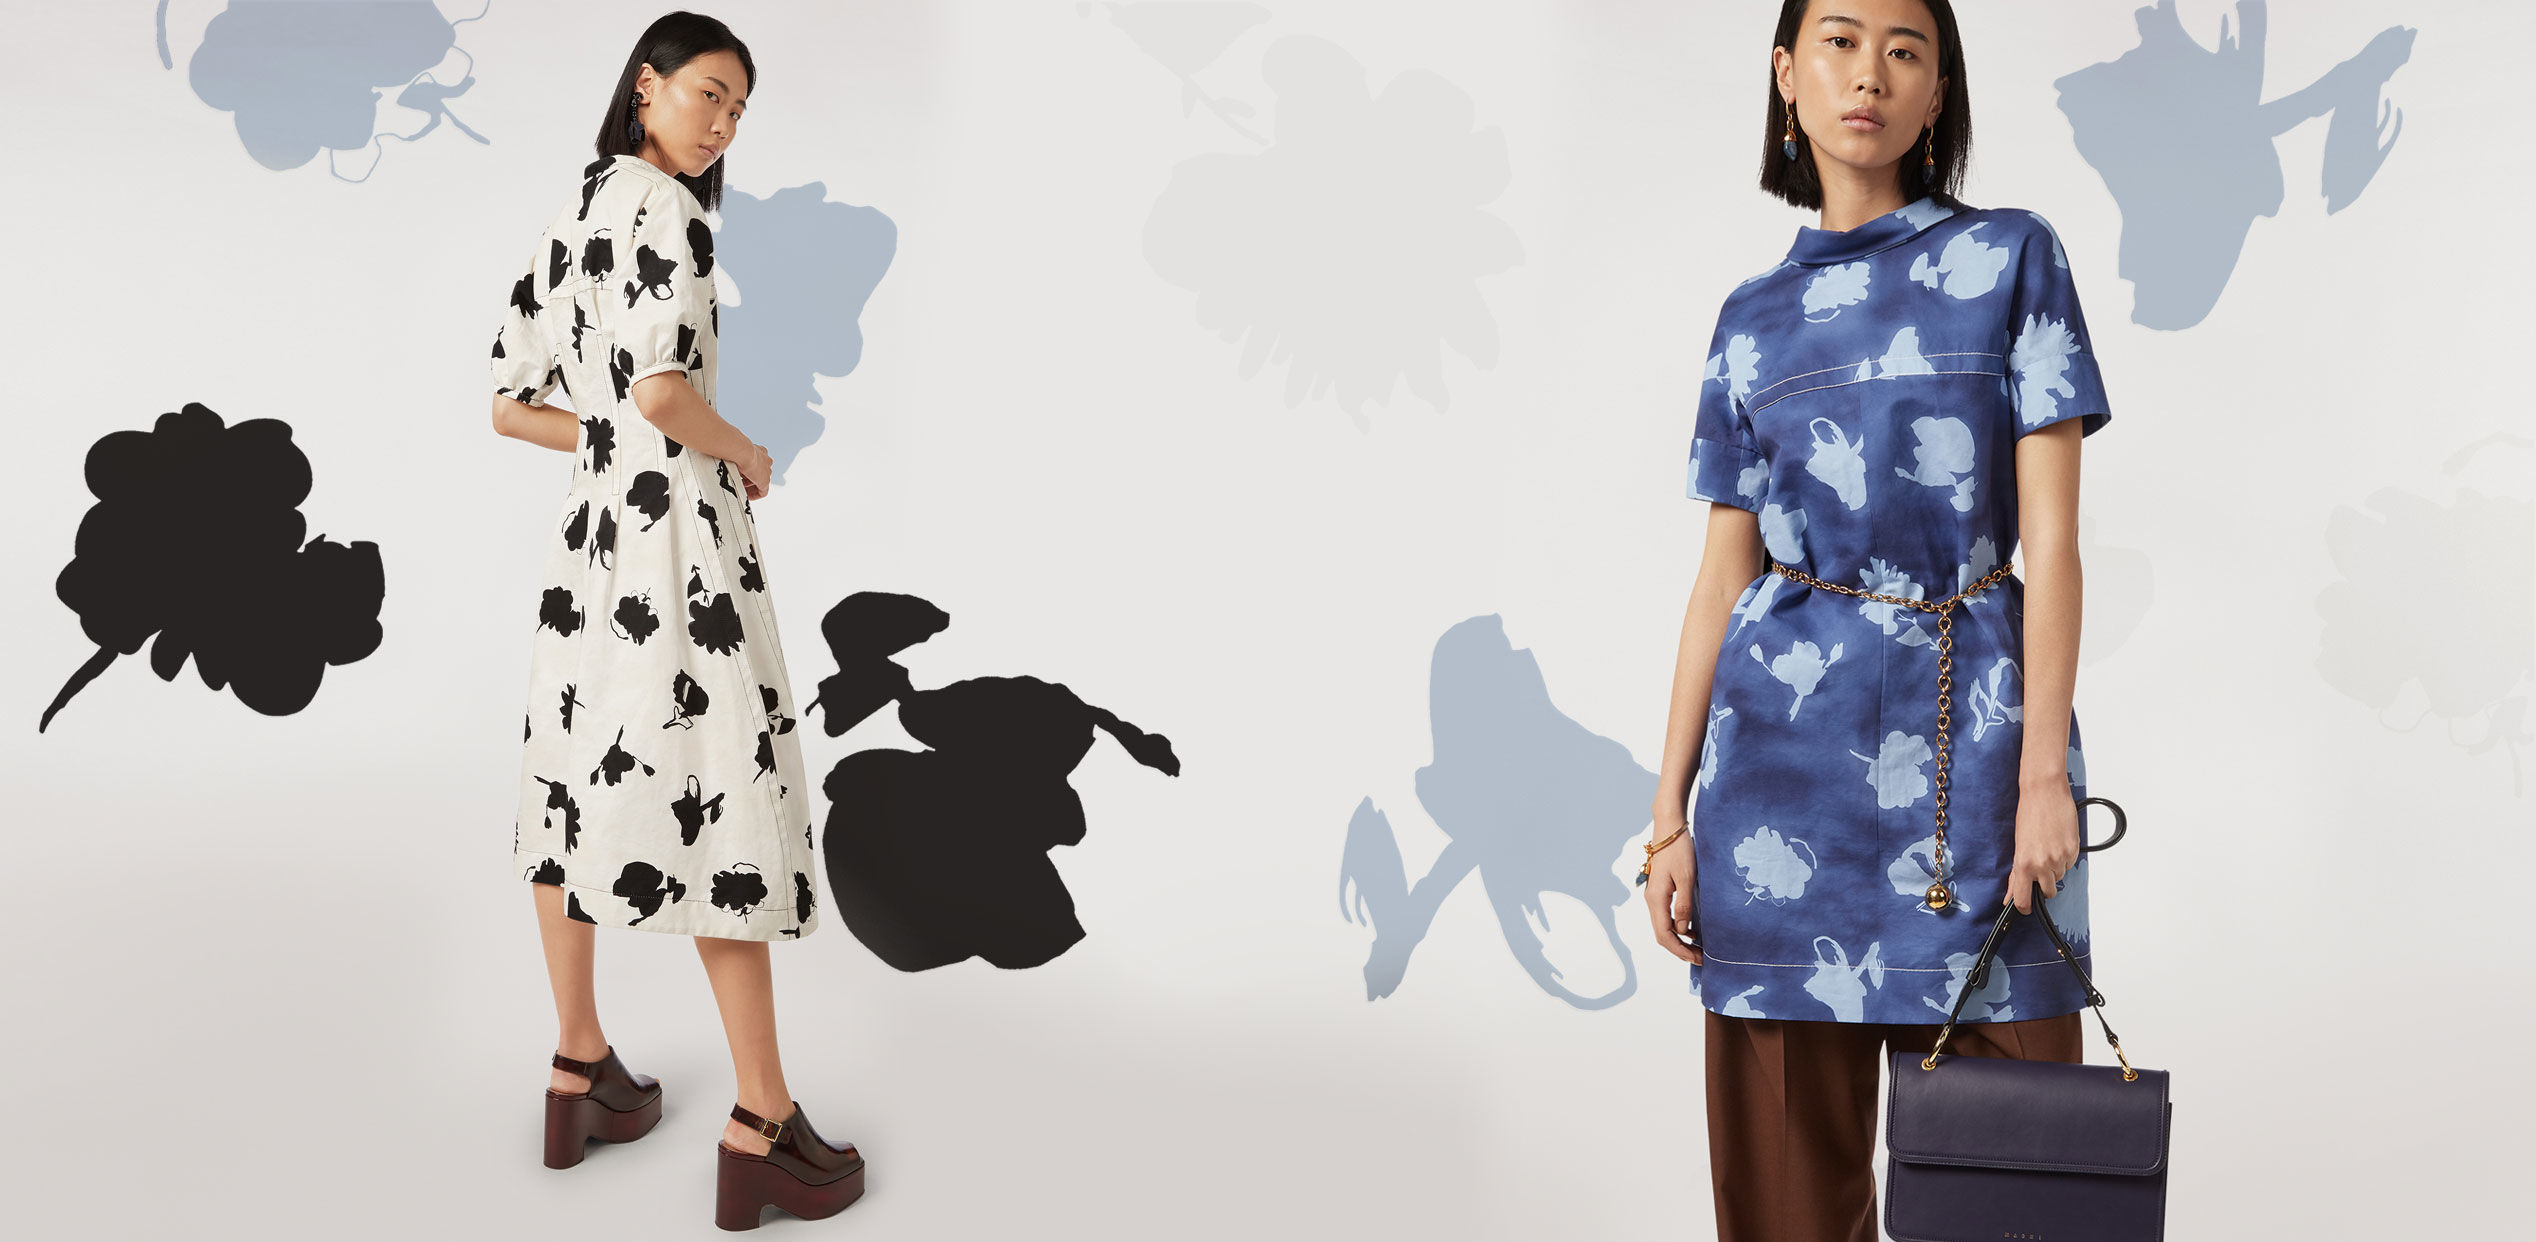 4058e8493908 WOMEN'S DRESSES New prints from the Prefall 2019 collection